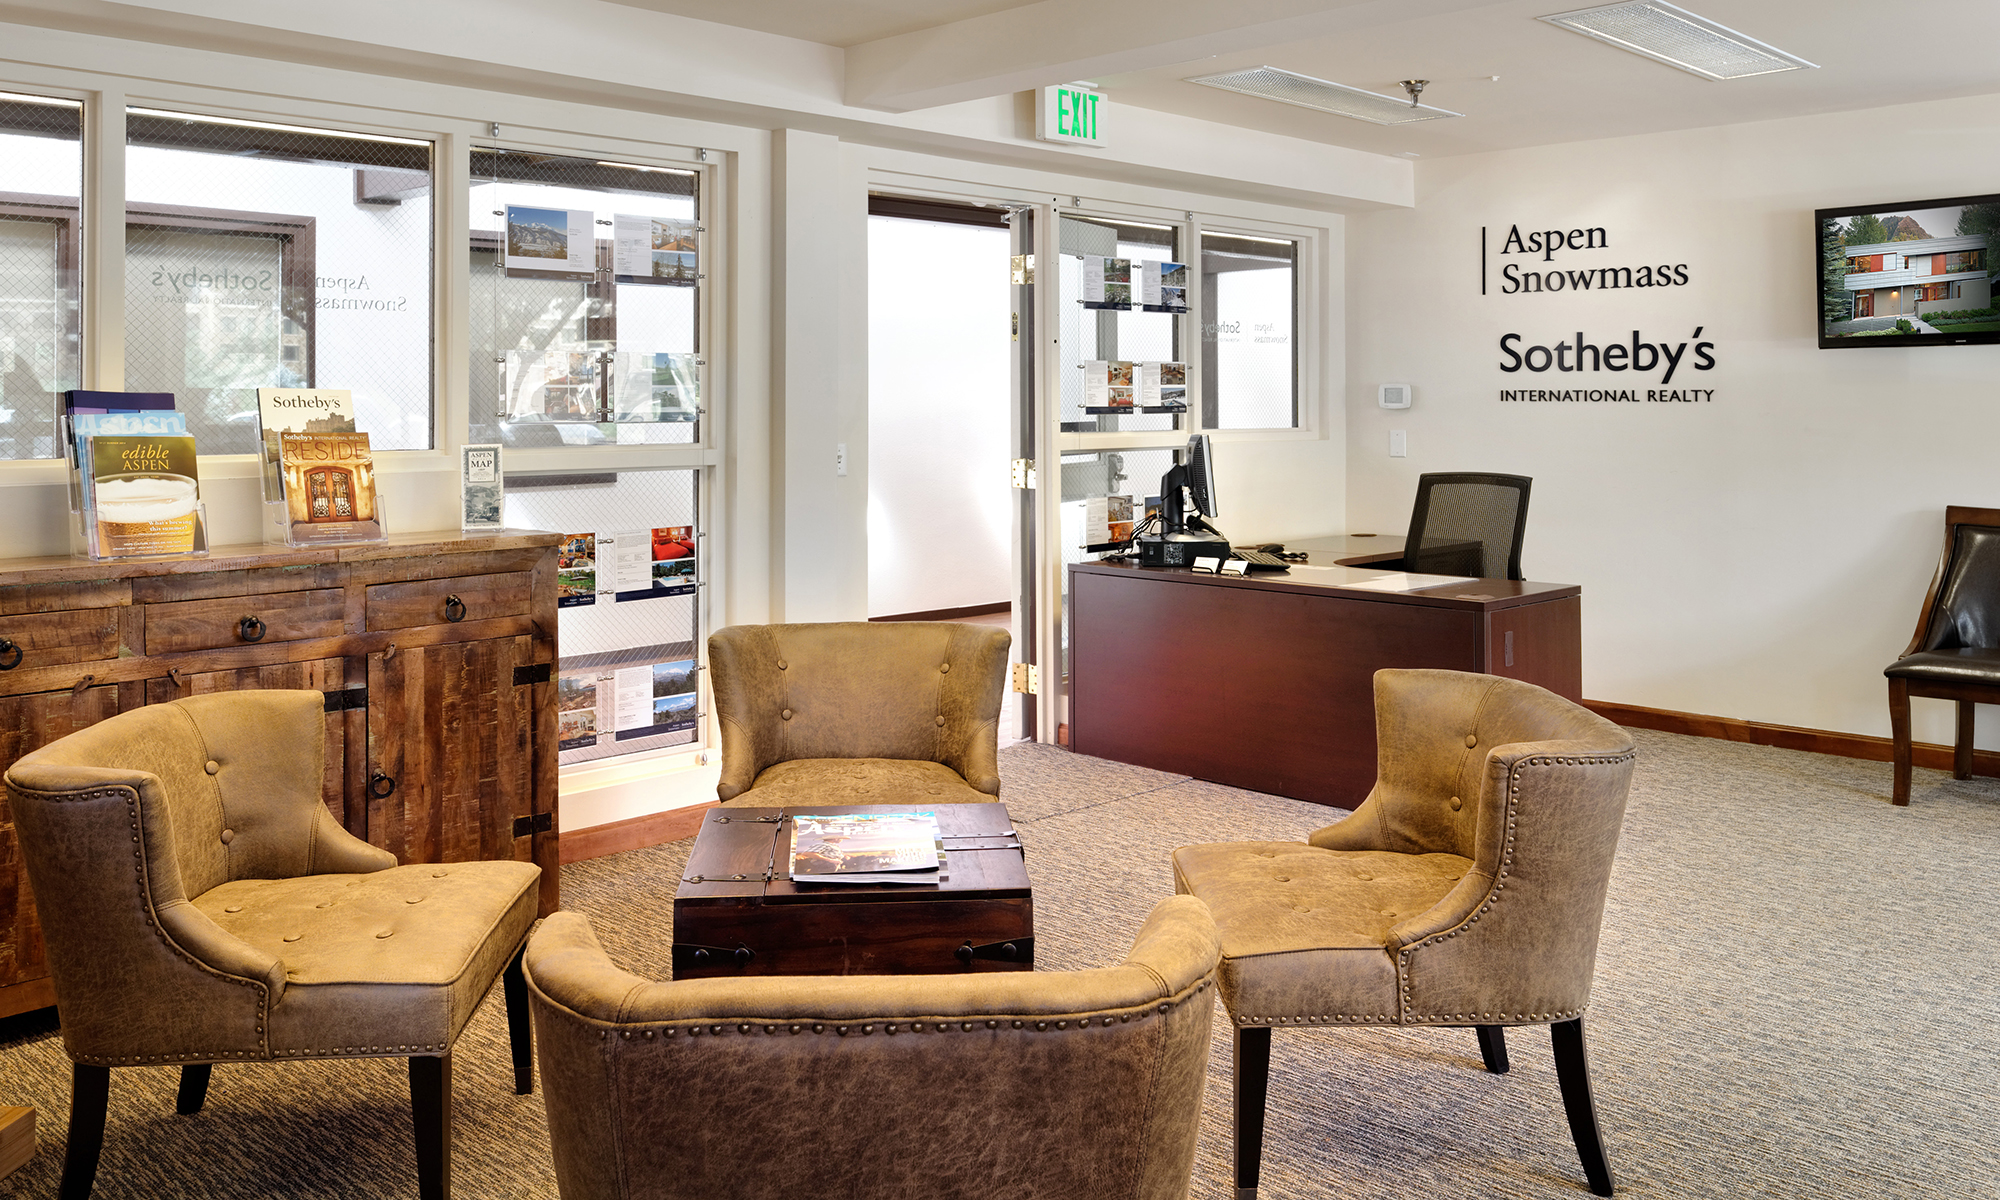 Snowmass Center Office Aspen Snowmass